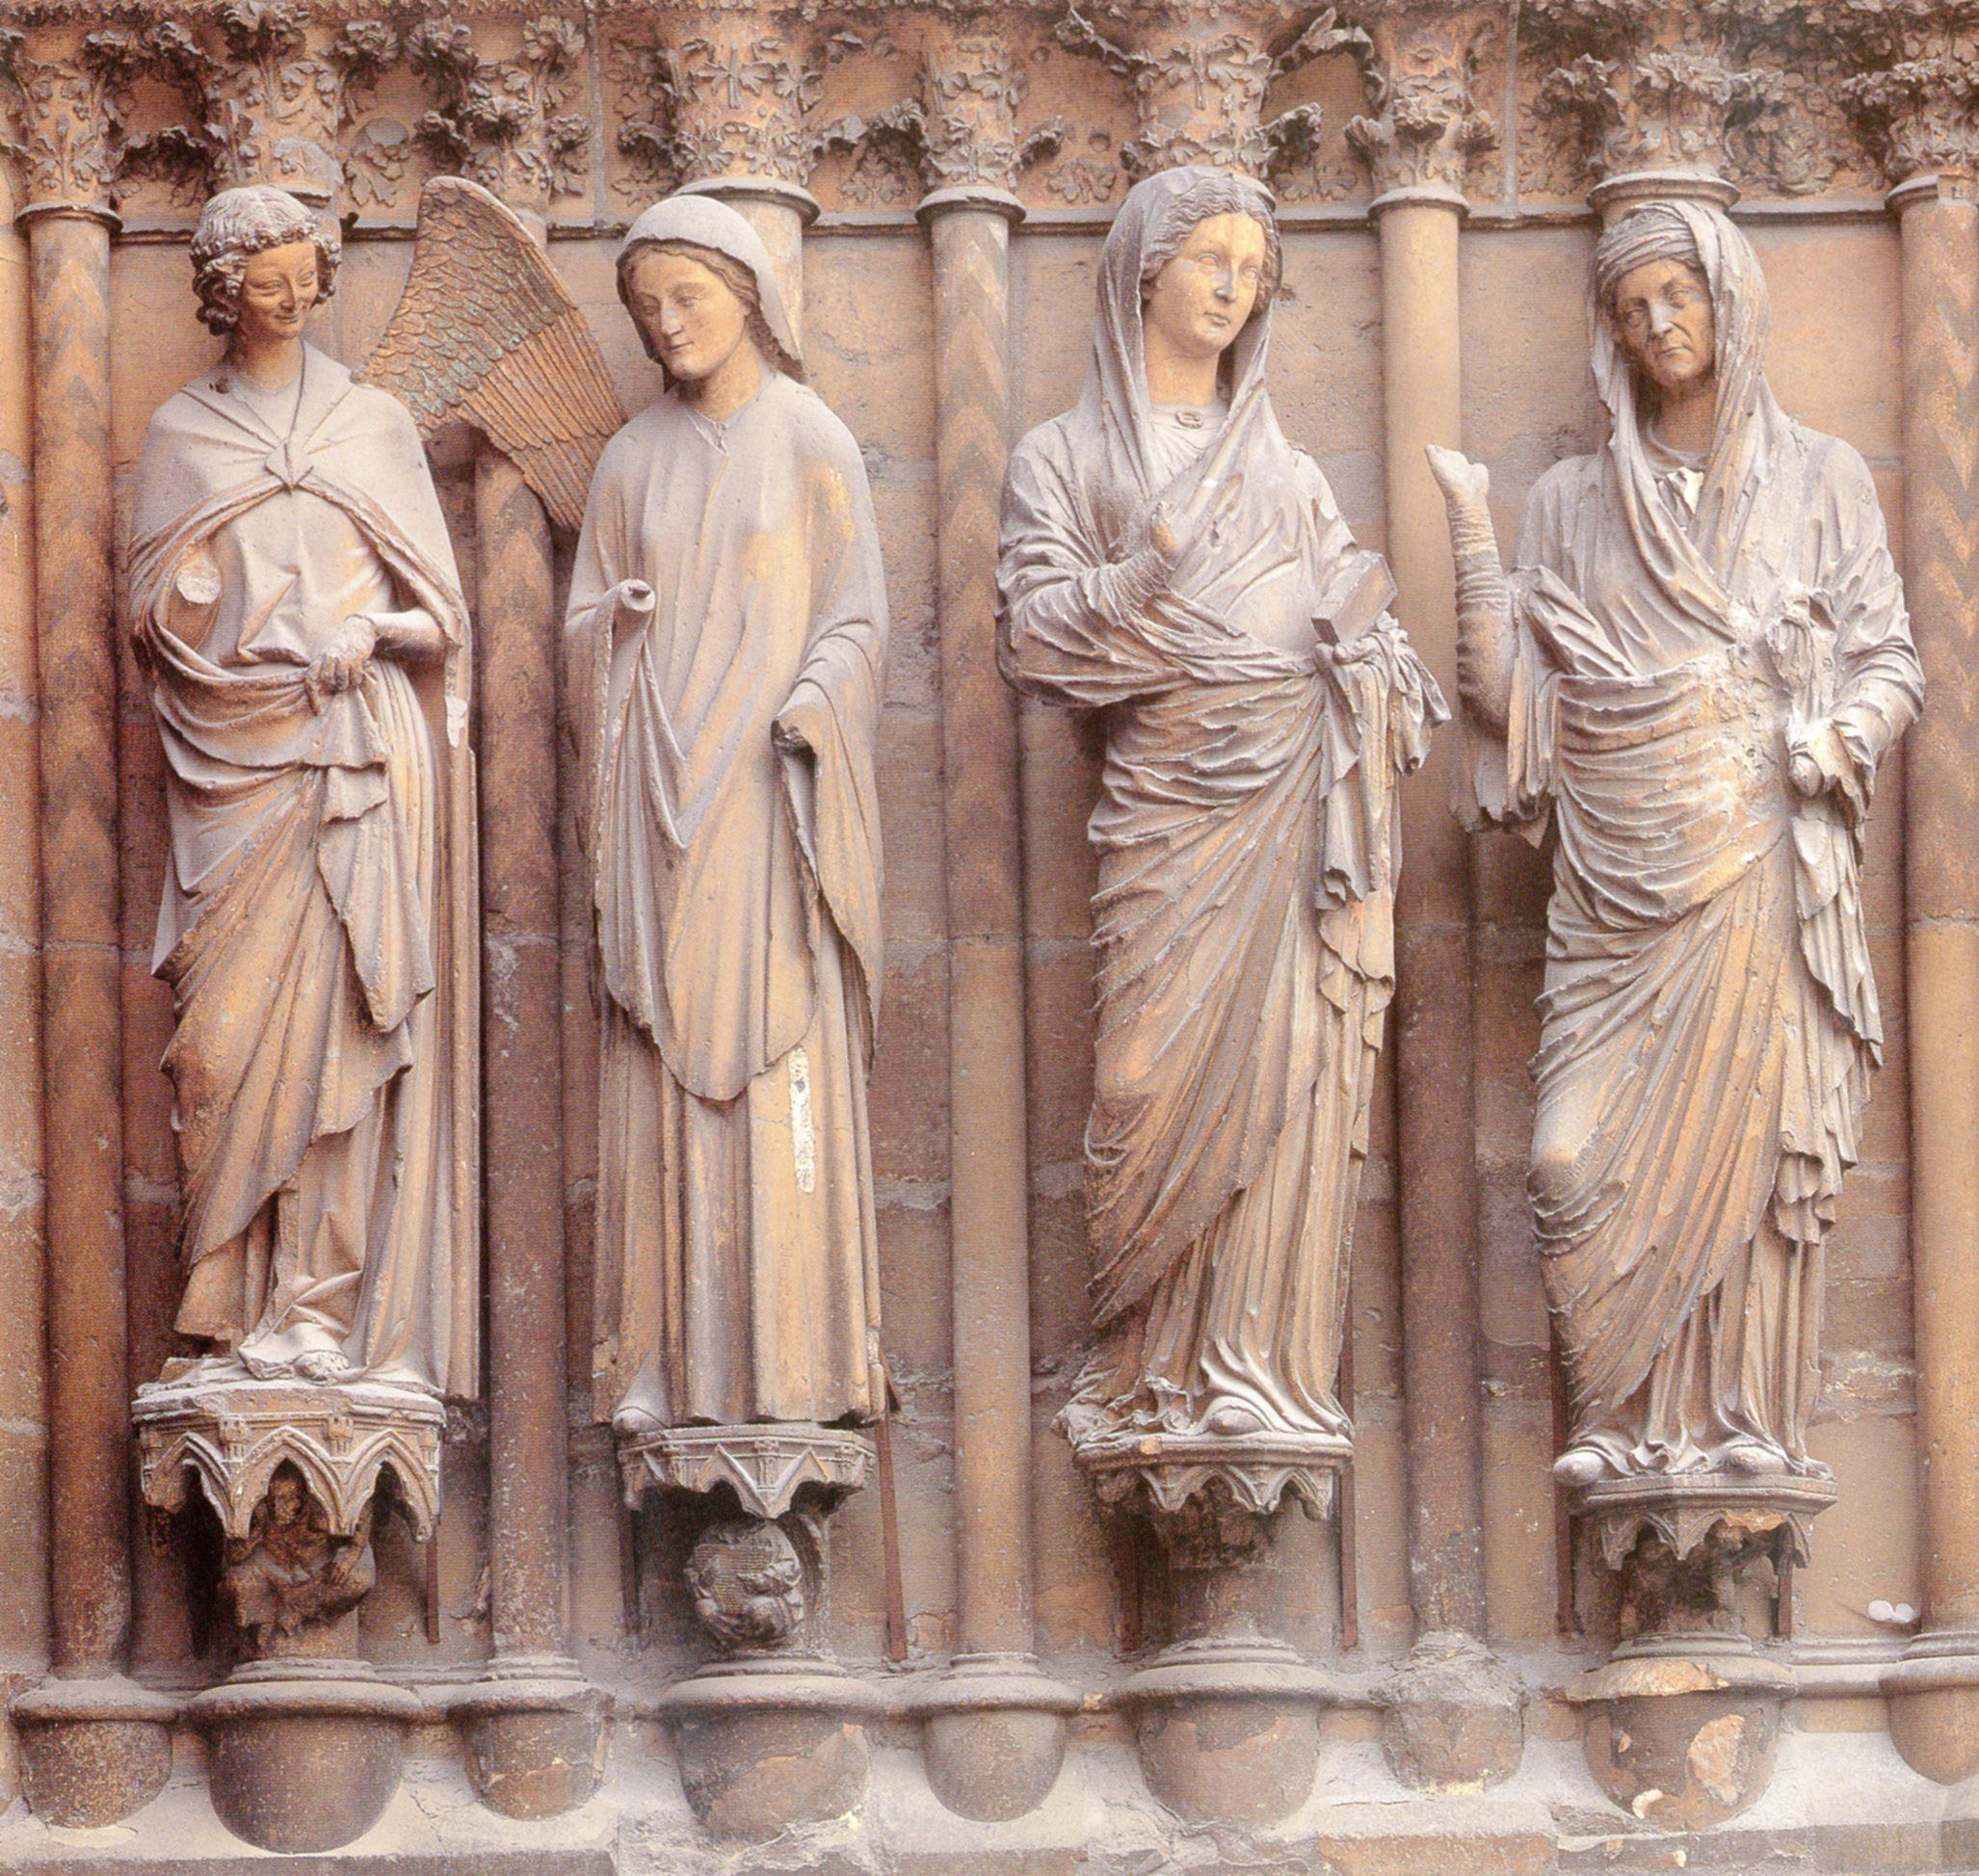 Annunciation And Visitation Jamb Statues Of Central Doorway West Facade Reims Cathedral France Ca 1230 1255 CE Gothic